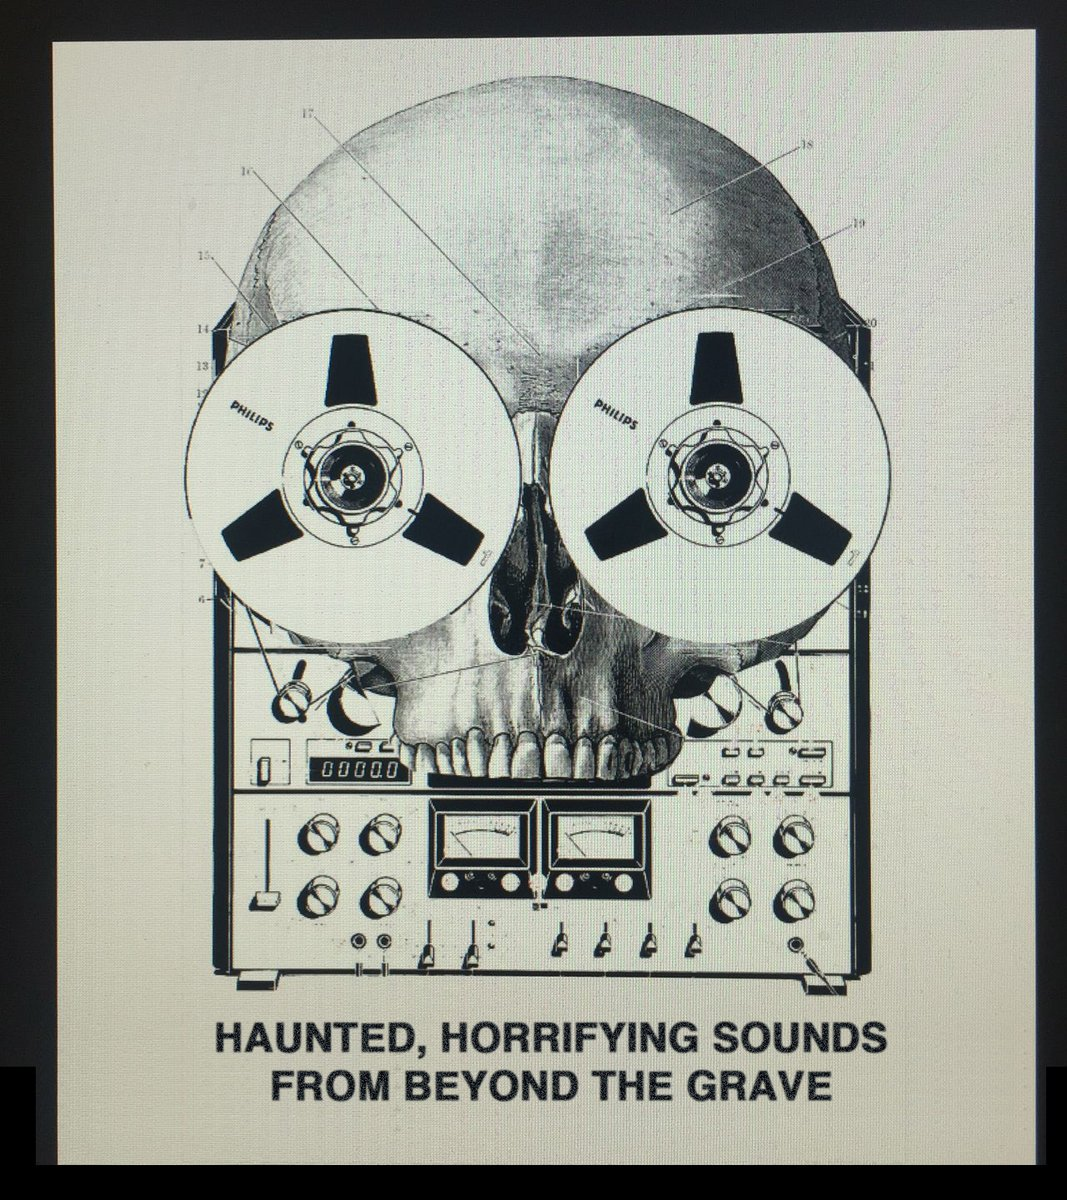 Haunted, Horrifying Sounds From Beyond The Grave (short)